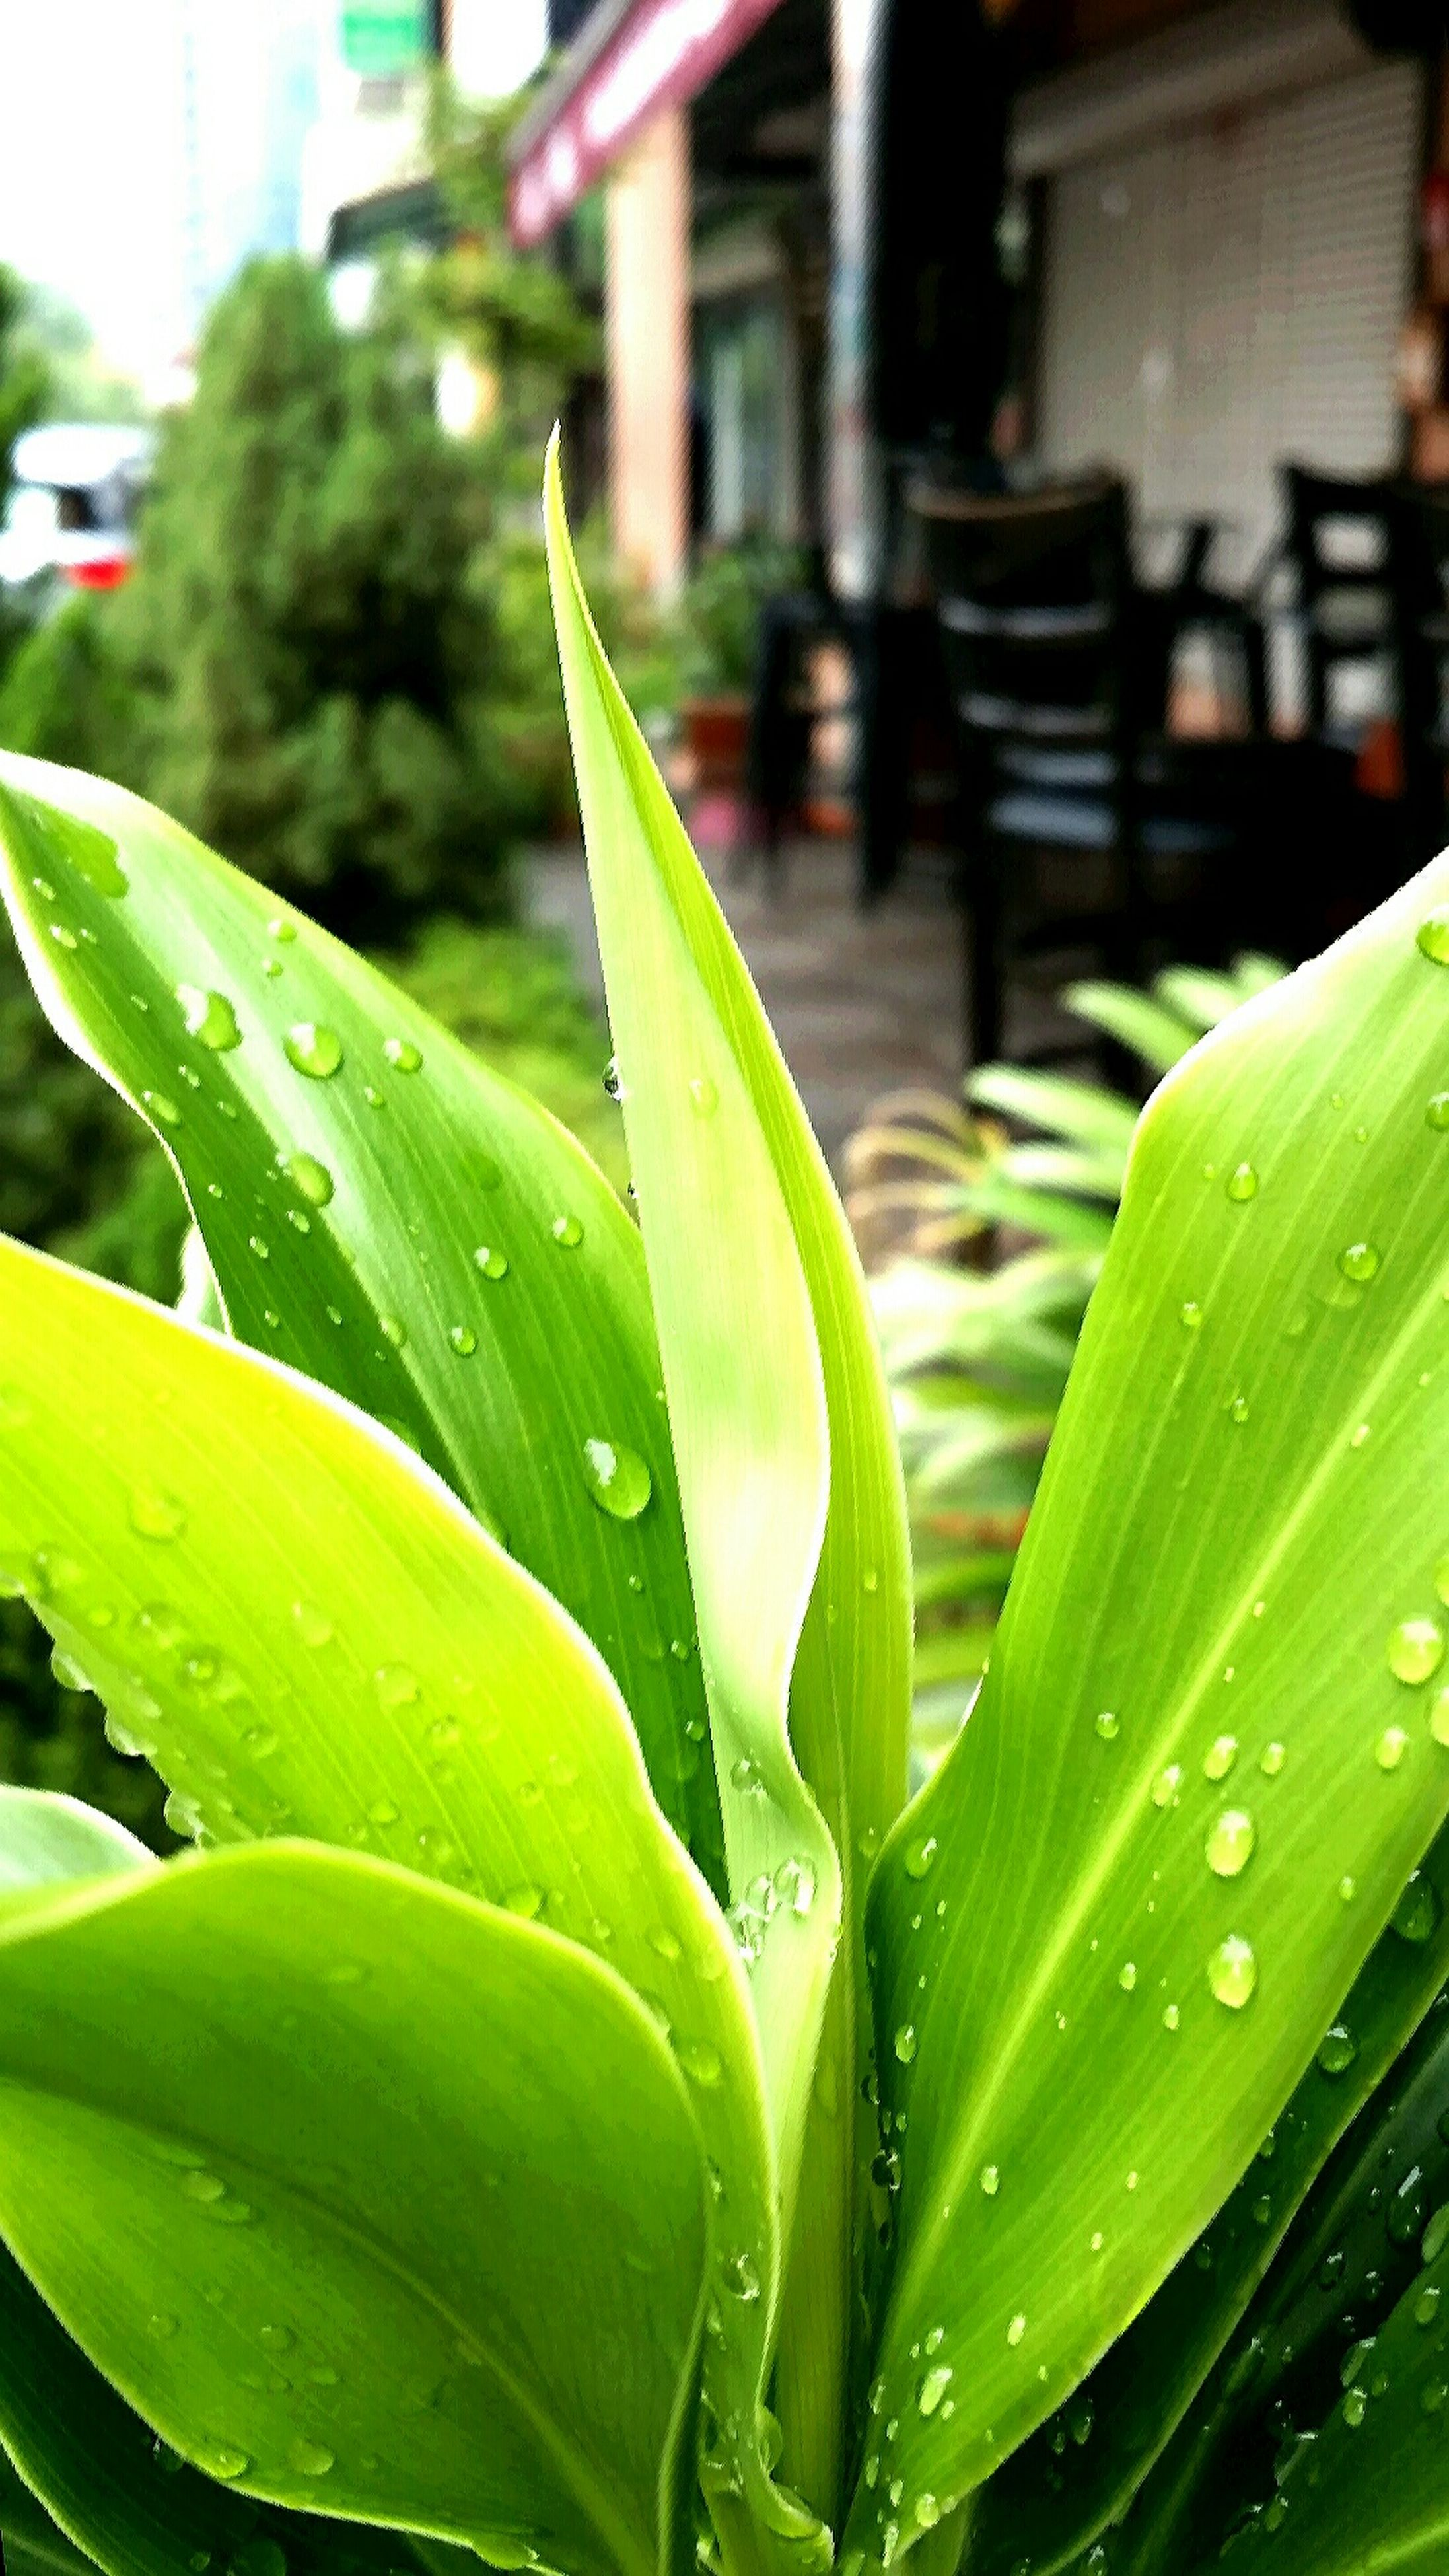 drop, water, leaf, wet, green color, focus on foreground, close-up, growth, plant, freshness, rain, selective focus, nature, raindrop, fragility, green, day, building exterior, outdoors, water drop